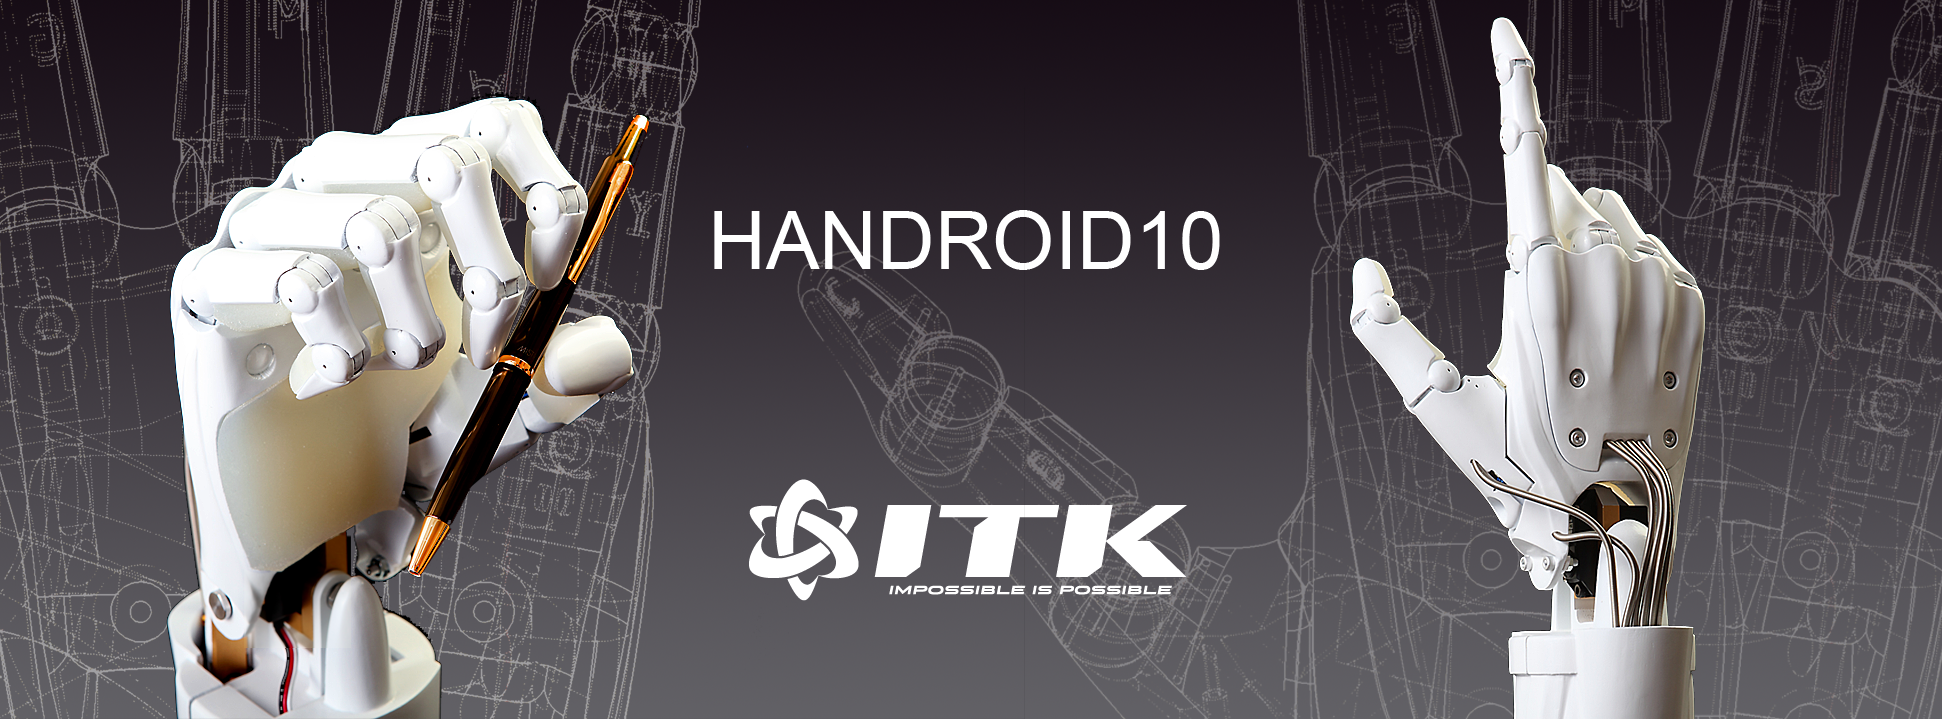 handroid10_top